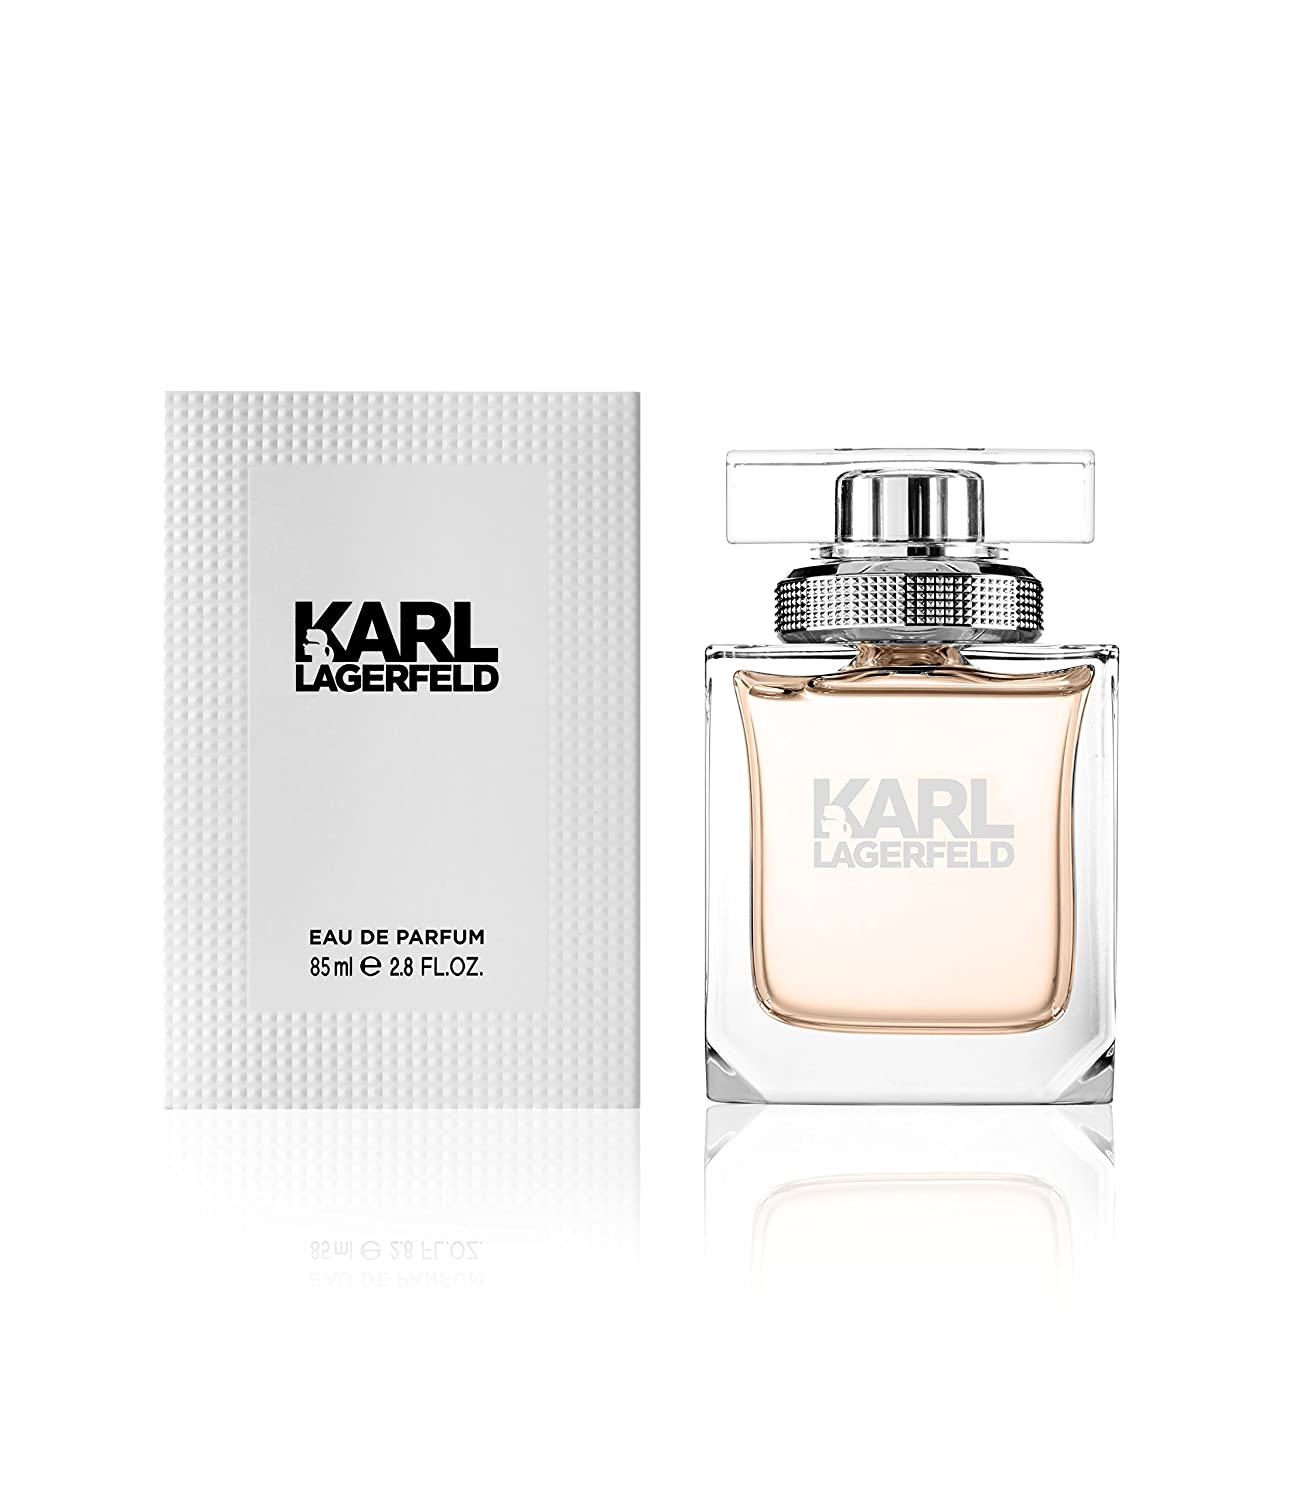 LAGERFELD Karl Lagerfeld for Women EDP Vapo 85 ml, 1er Pack (1 x 85 ml) 3386460059114 P-LS-303-85_-85ml Duft > Damen